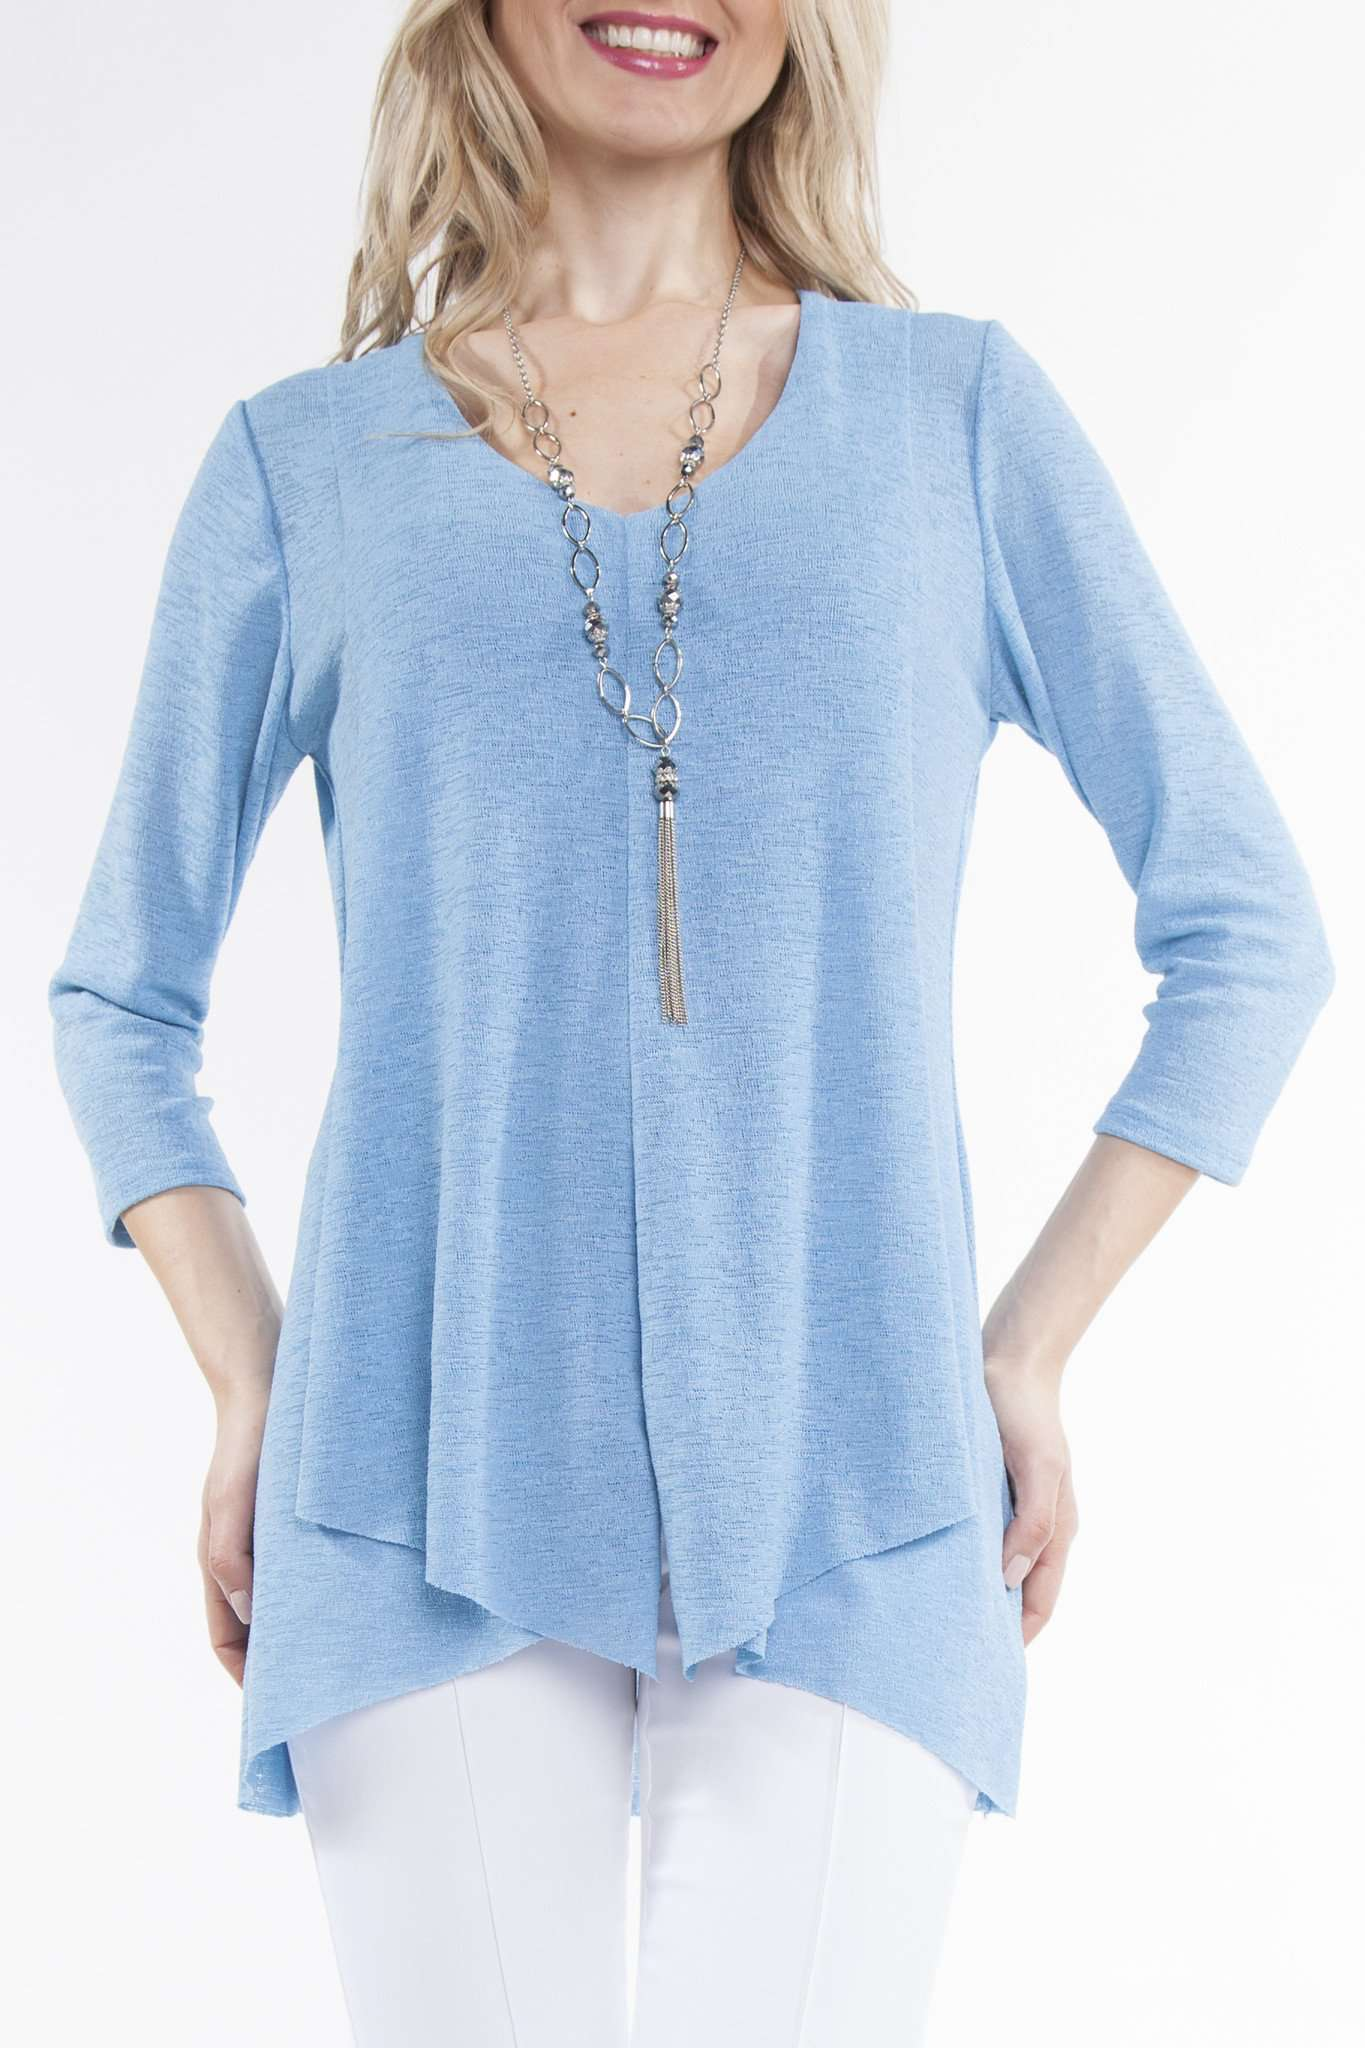 Blue Turquoise Figure Flattering Tunic Top - Yvonne Marie